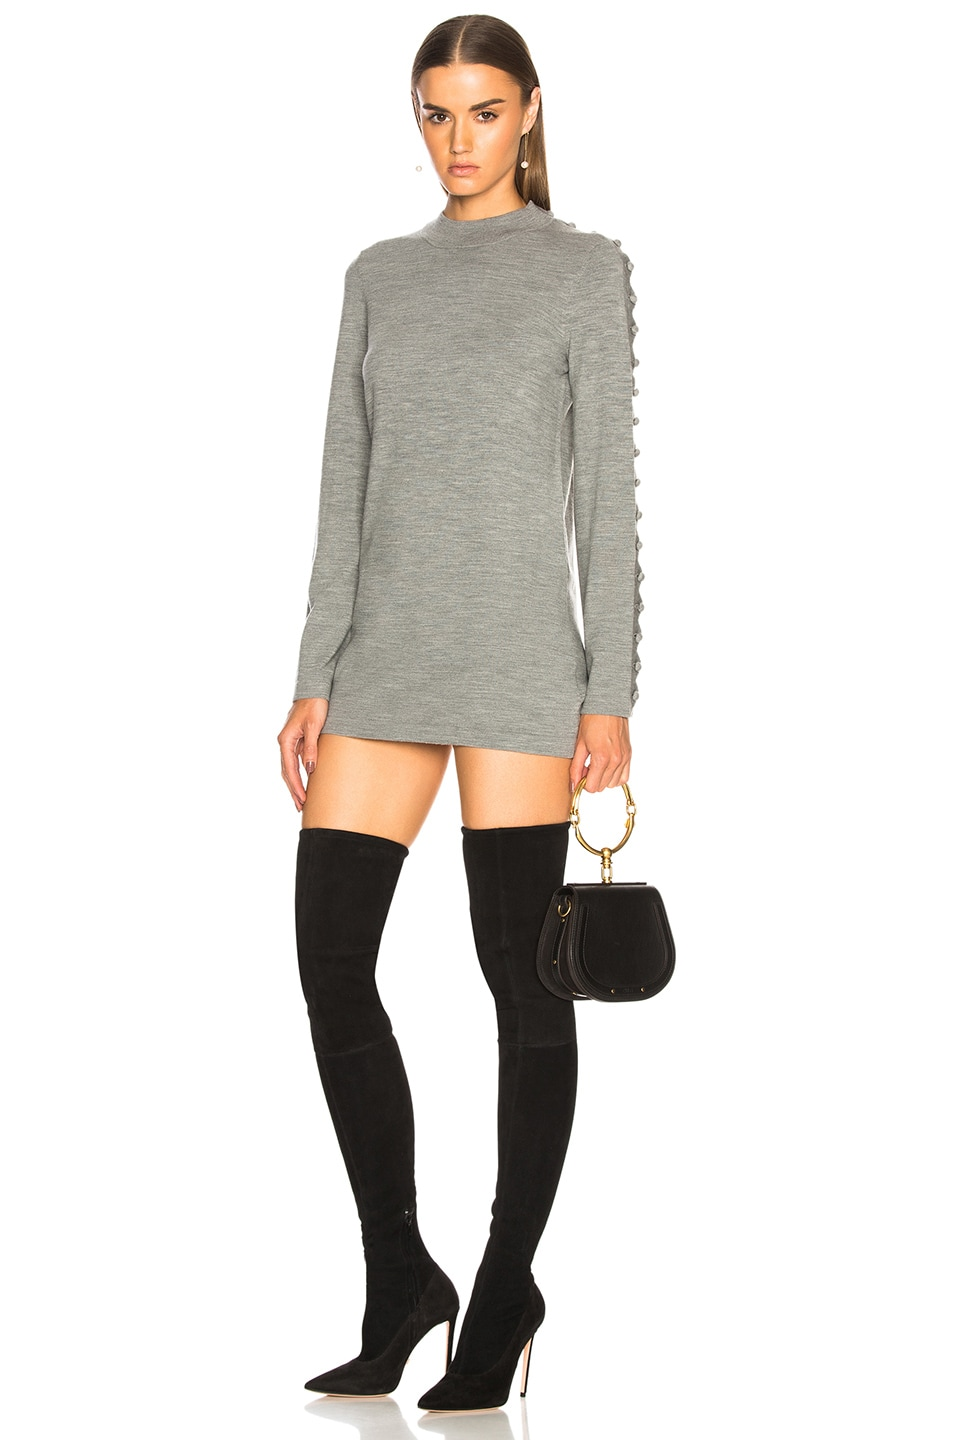 Chloe Superfine Knit Embellished Sleeve Sweater Dress in Gray